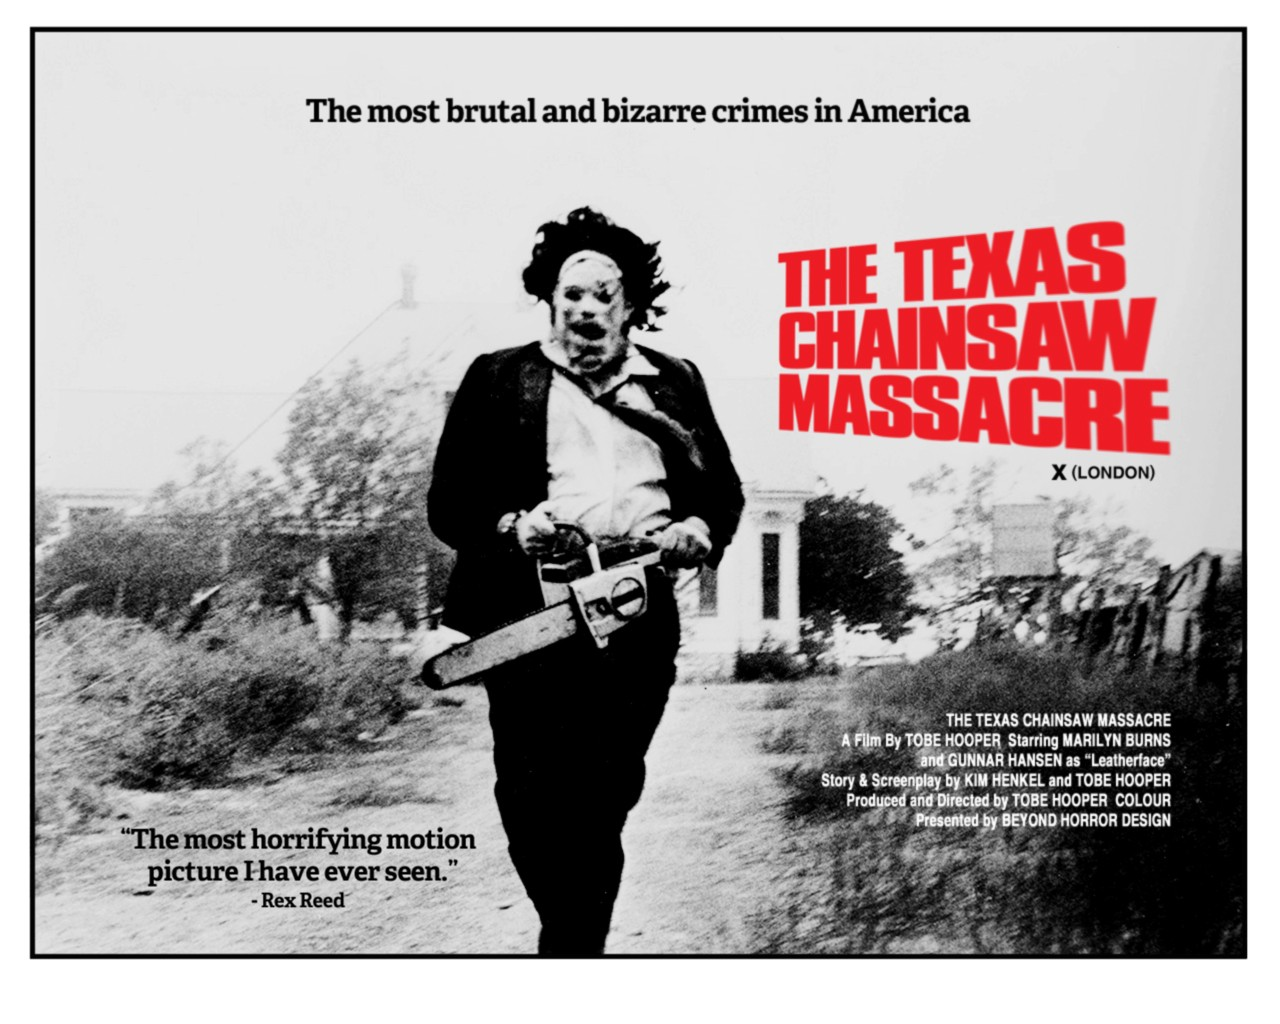 The Texas Chainsaw Massacre 1974 movie review